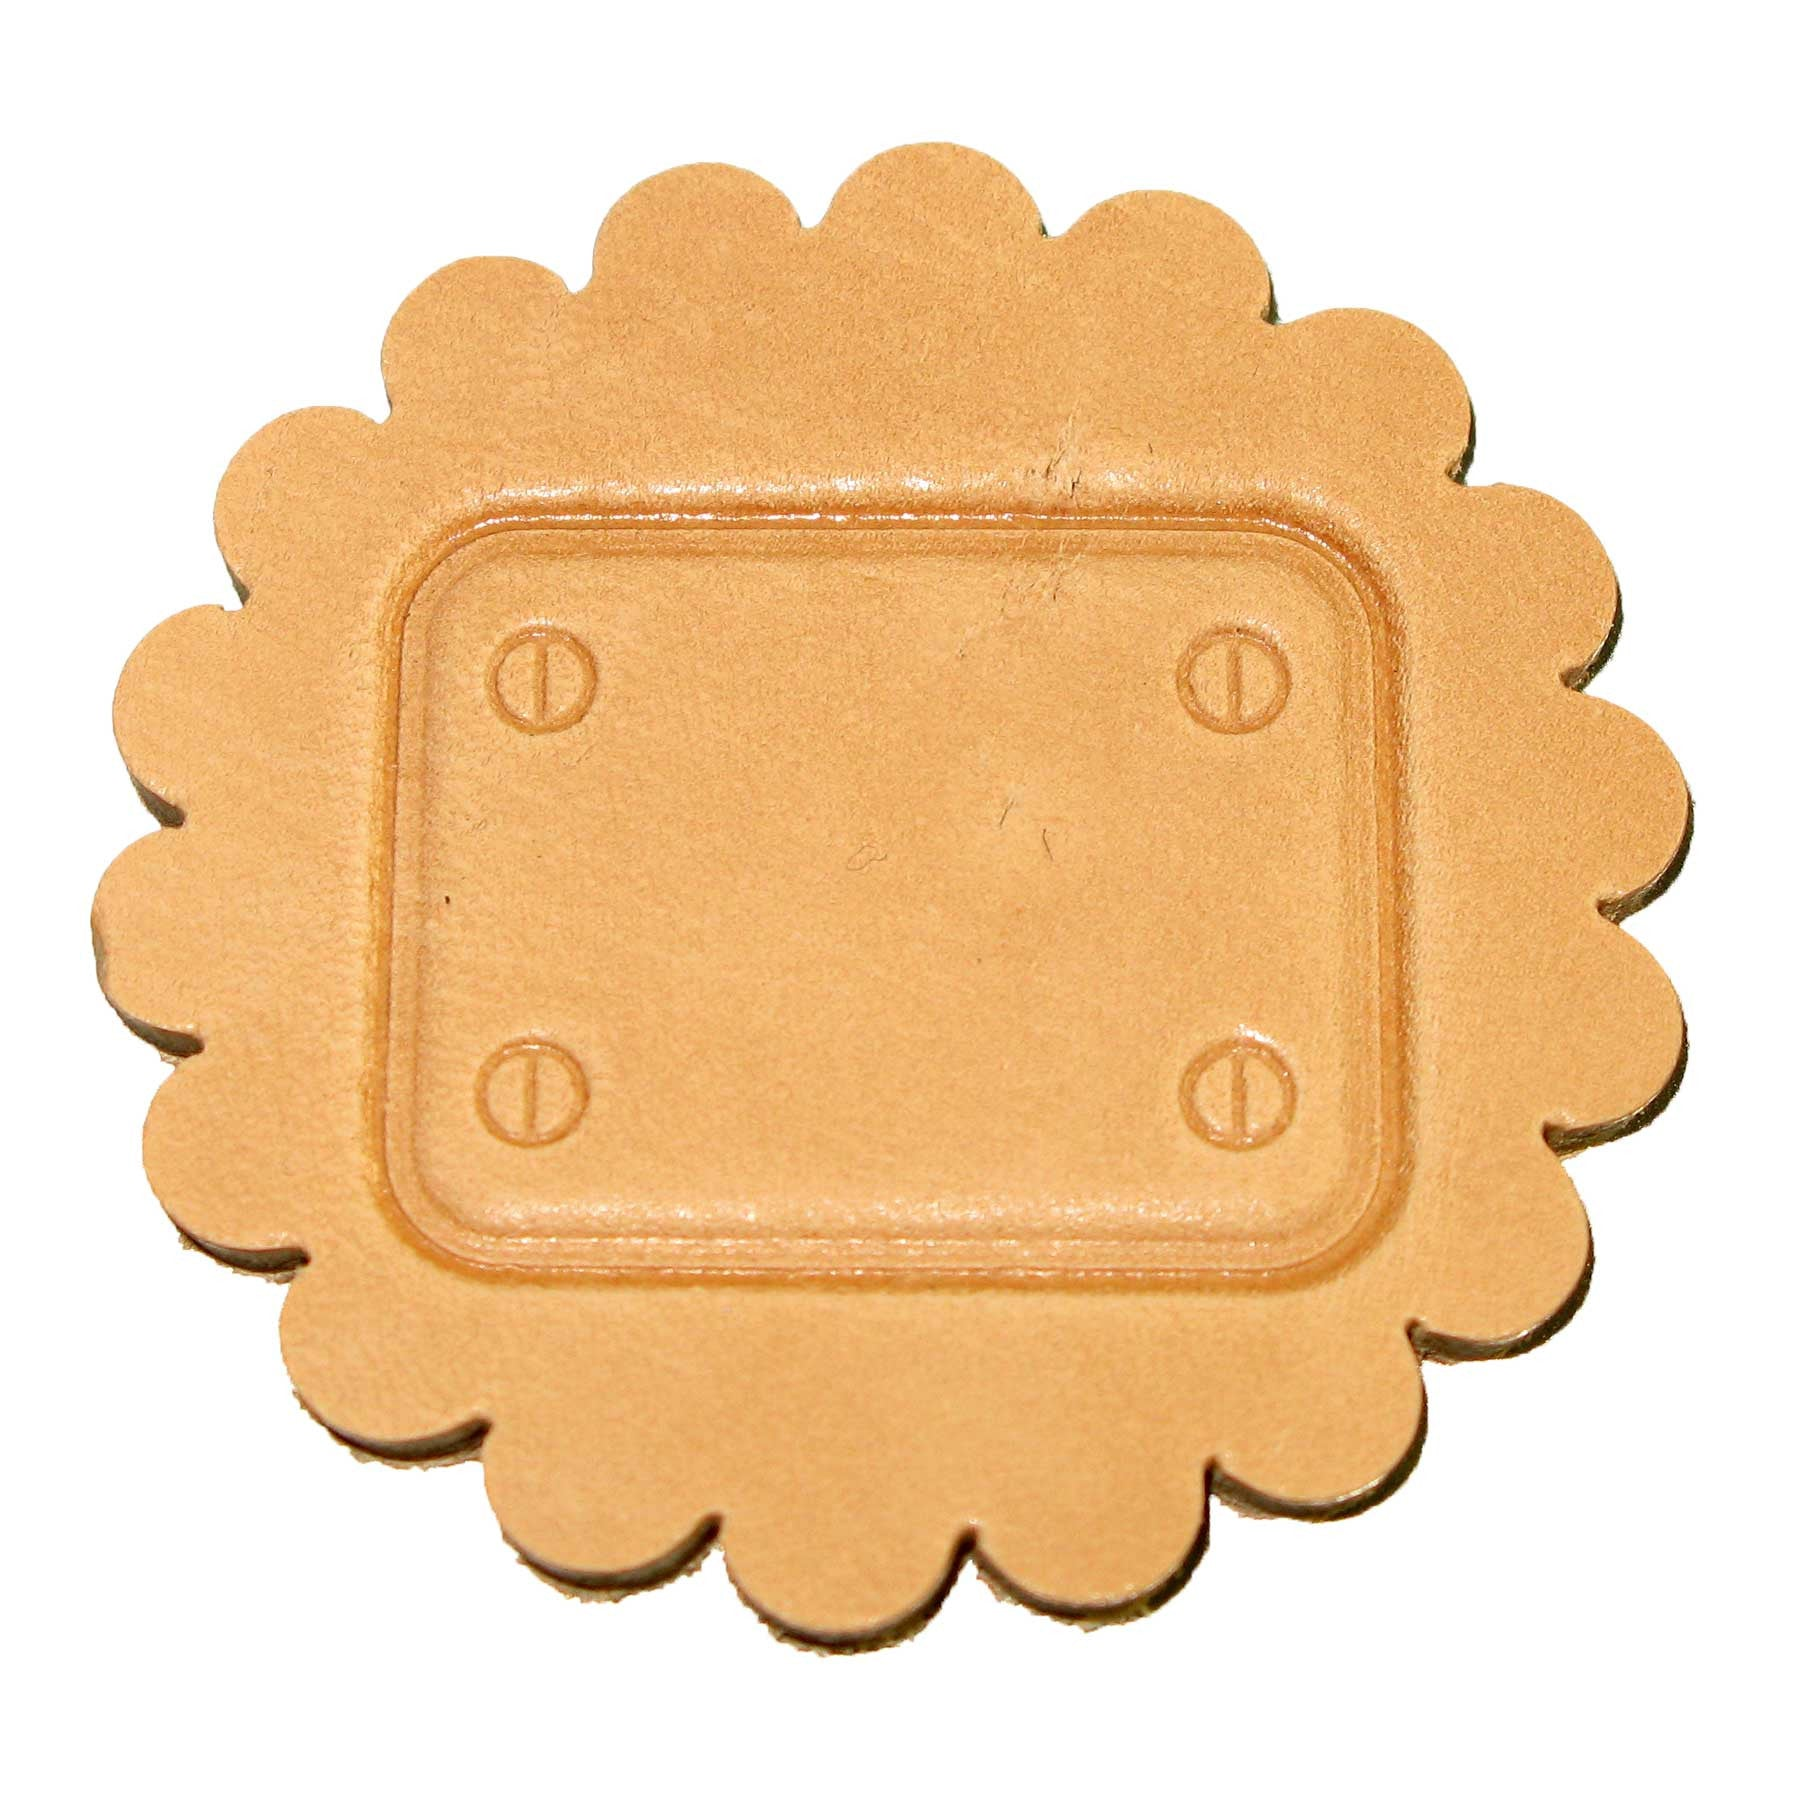 3-D Stamp Plate Leathercraft 8662-00